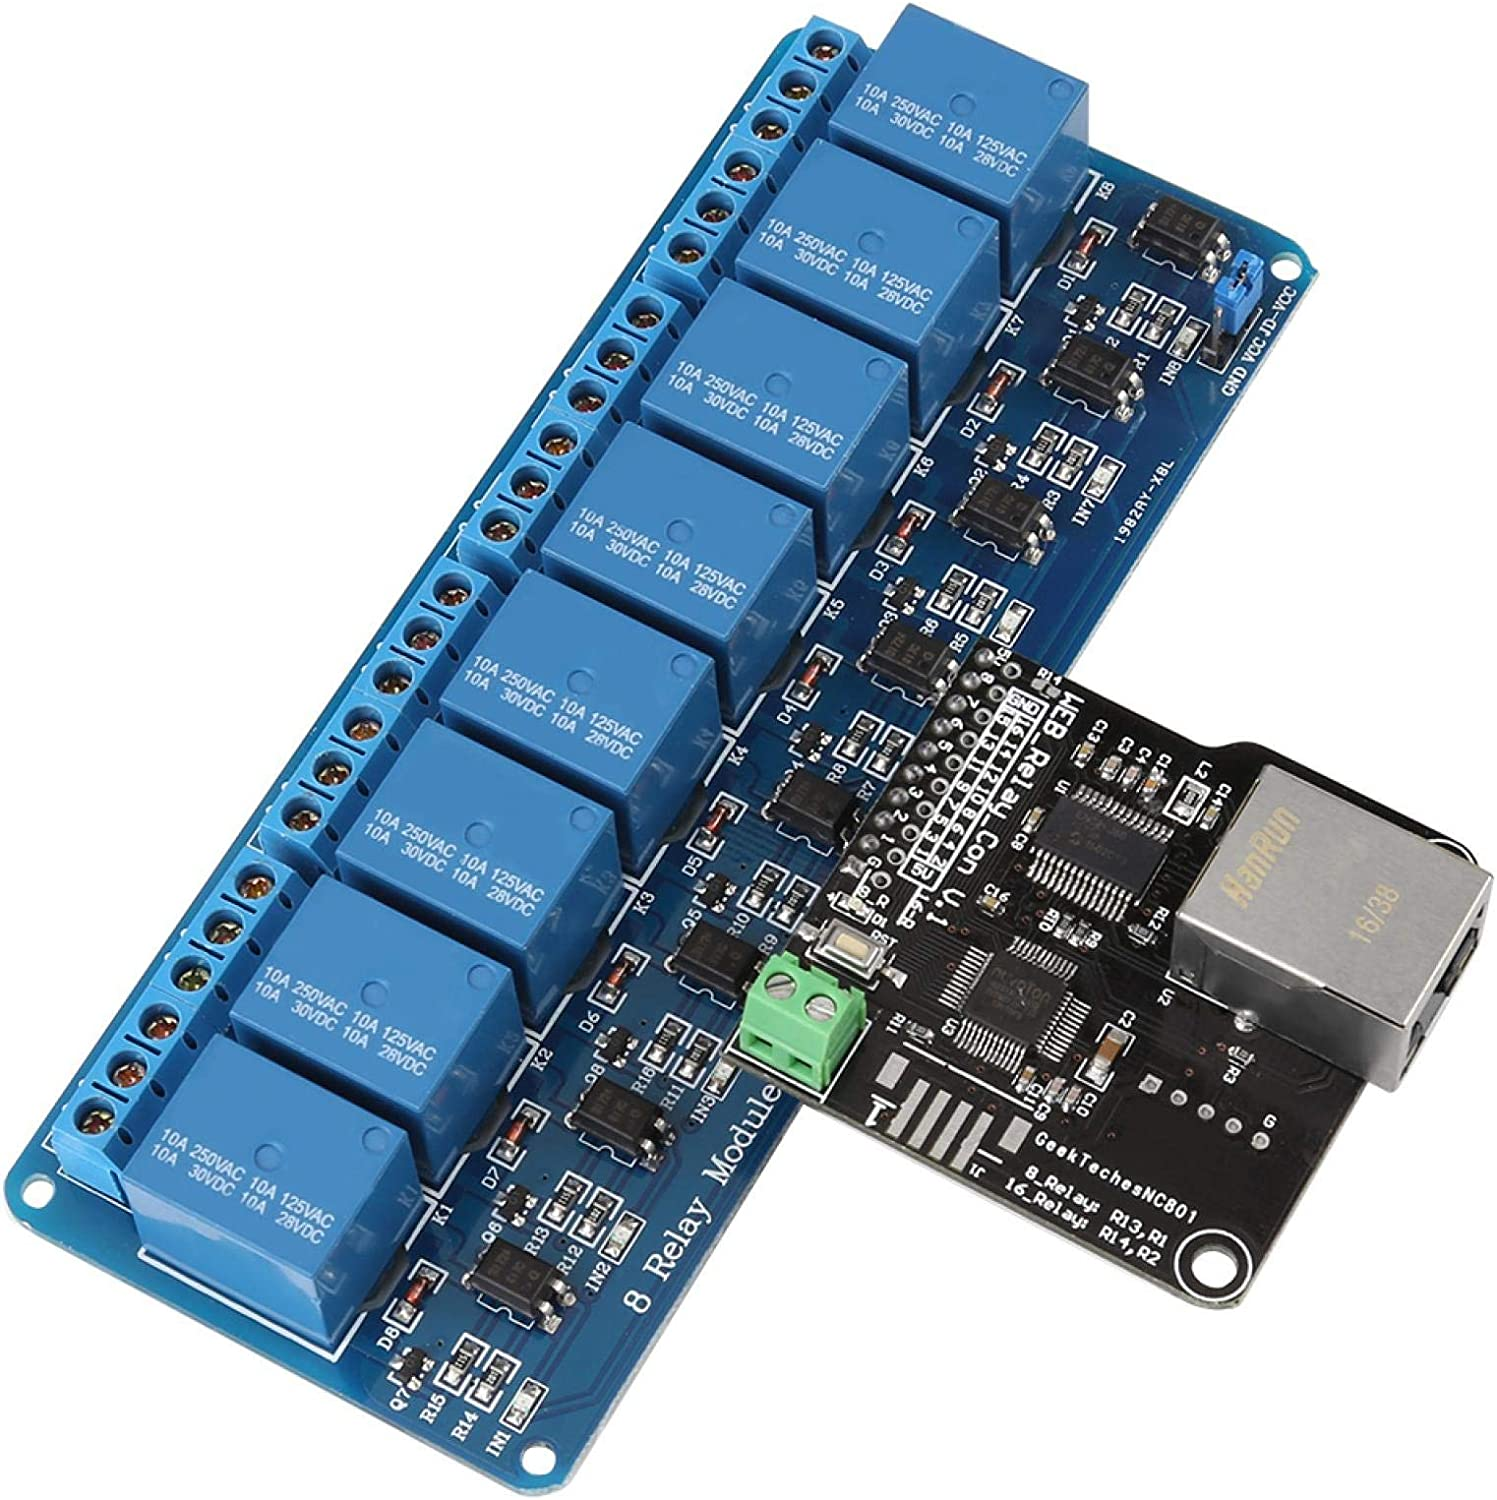 1Pc Relay Network Ethernet Relay Controller Module Control Board,LAN WAN Network Web Server with RJ 45 Interface with 8 Channel Relay Module for Smart Home Remote Control